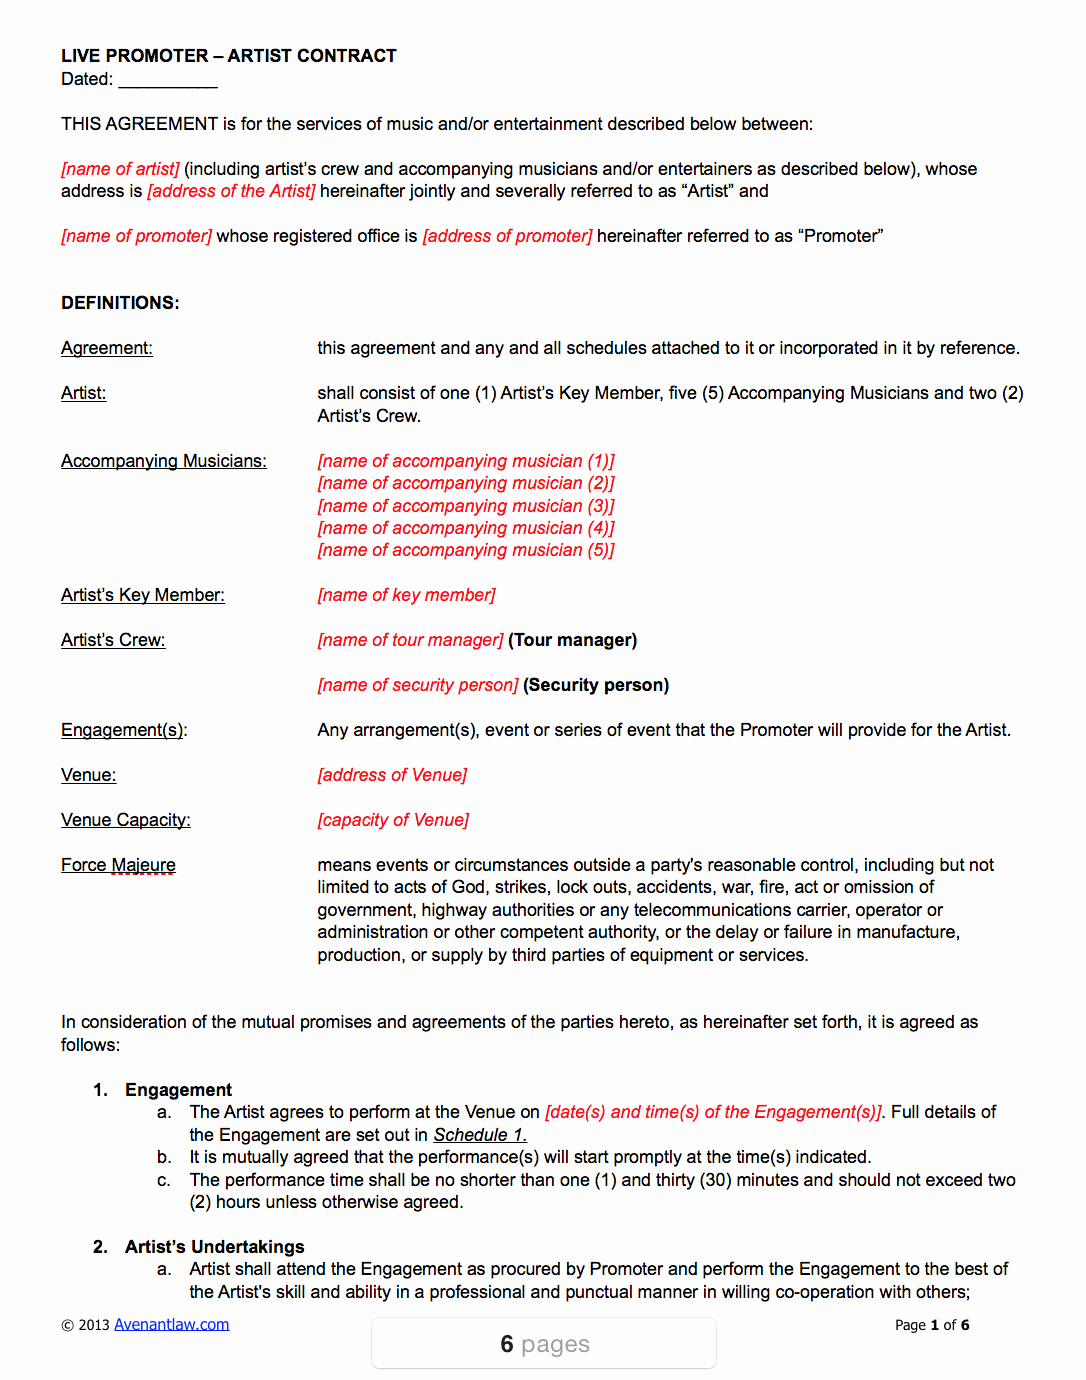 Music Performance Contract Template Elegant Live Promoter Artist Contract Template